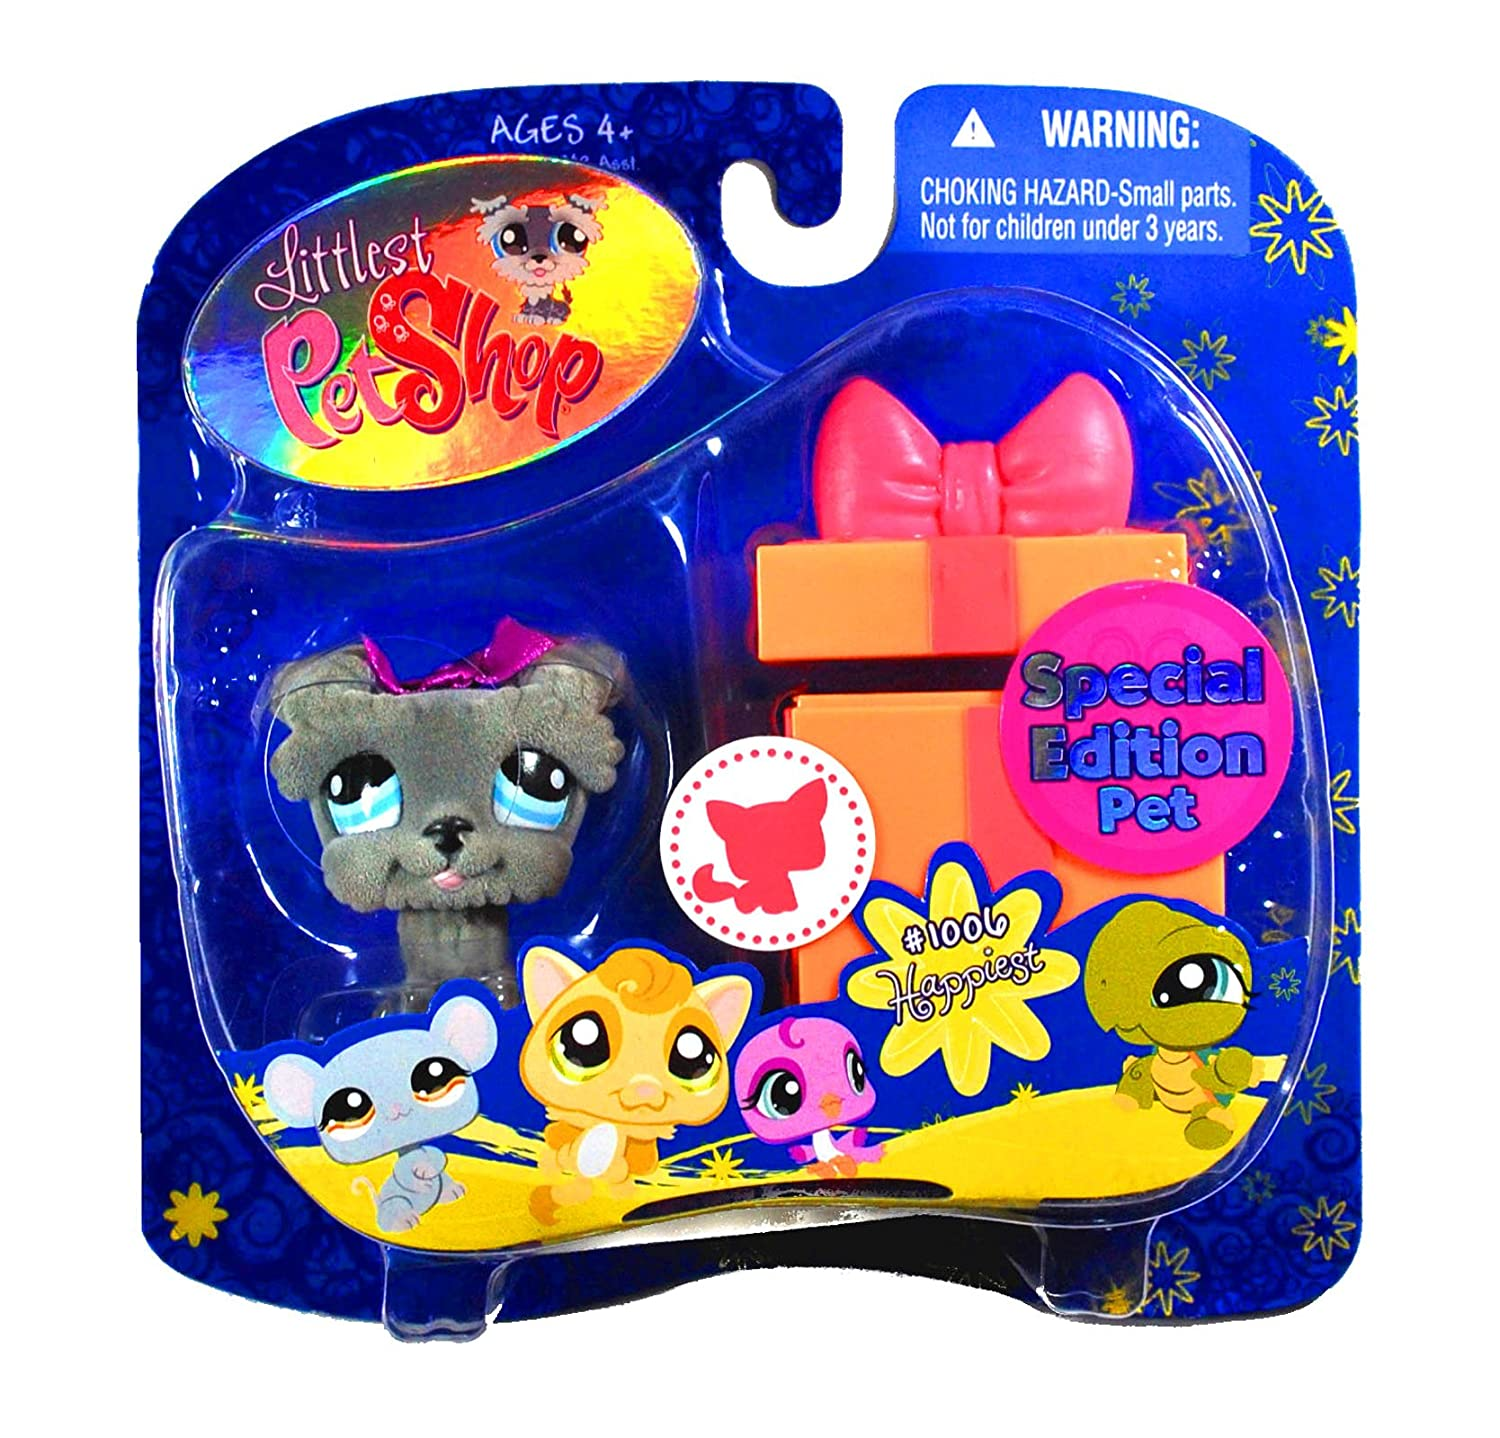 Gray Schnauzer Puppy Dog with Gift Box - Happiest - Littlest Pet Shop Pet & Accessory Hasbro 1006 HAPPIEST